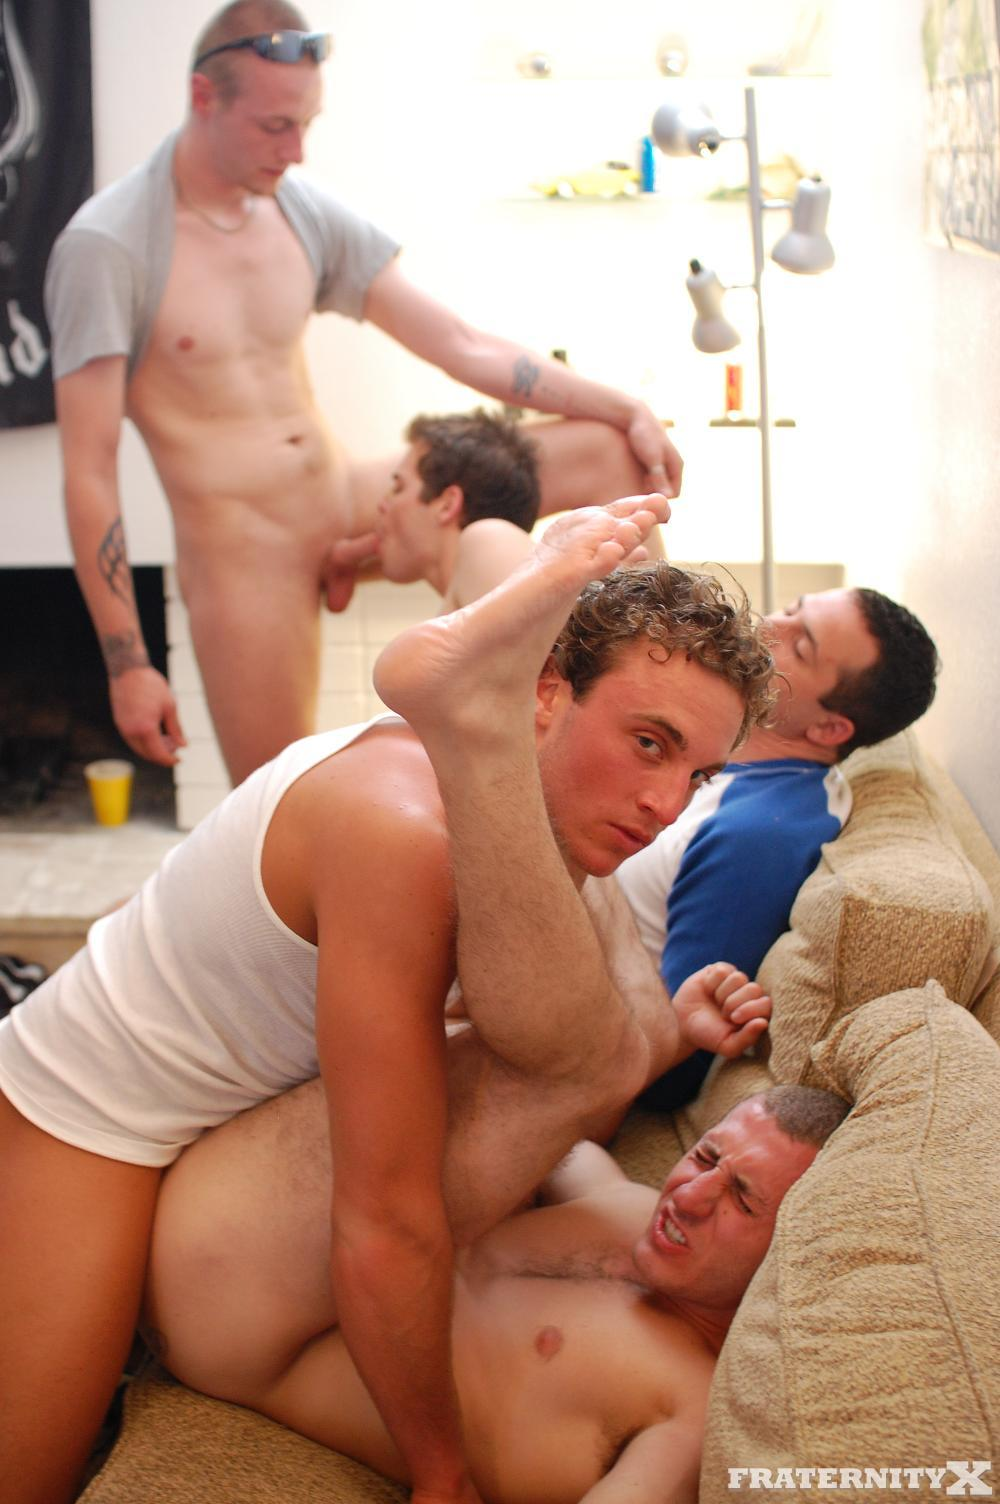 free gay x rated video sites